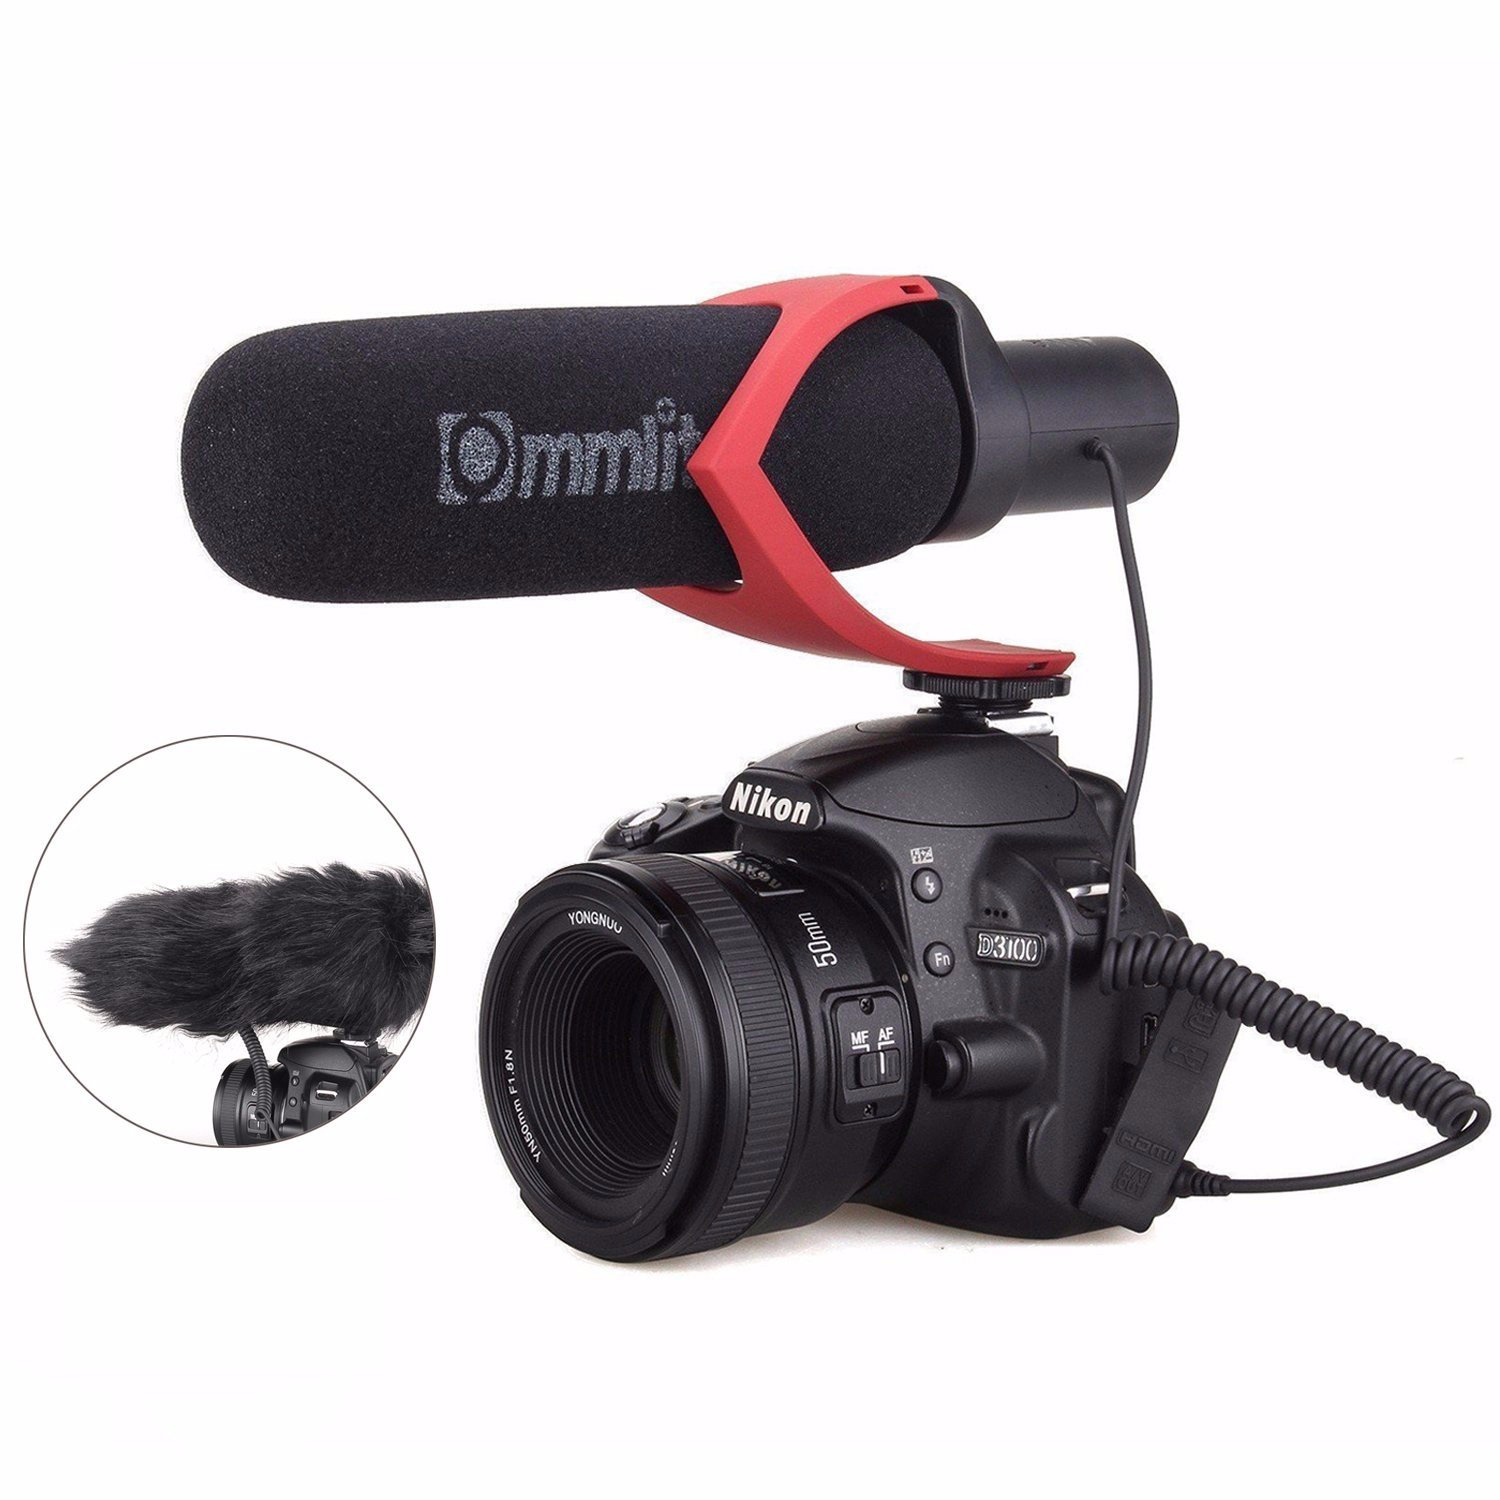 EACHSHOT CoMica Electrit Super-Cardioid Directional Condenser Shotgun Video Microphone Mic for Video and Interview with Nikon Canon Sony Camera, Camcorder (3.5mm TRS Jack) Red